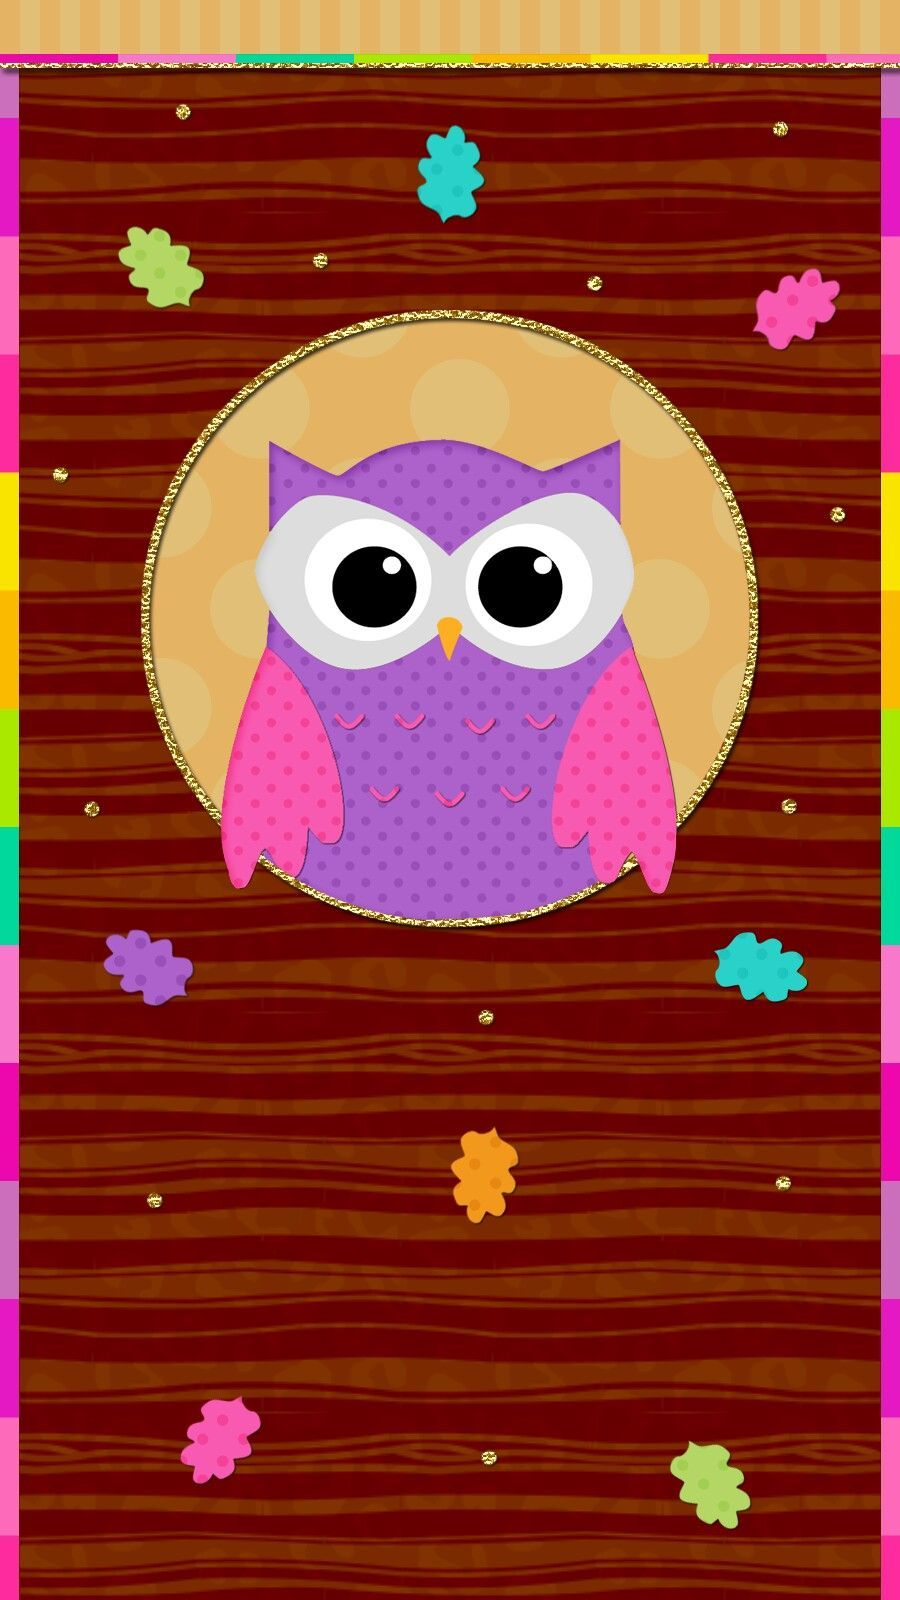 Cute Owl Halloween Wallpapers Top Free Cute Owl Halloween